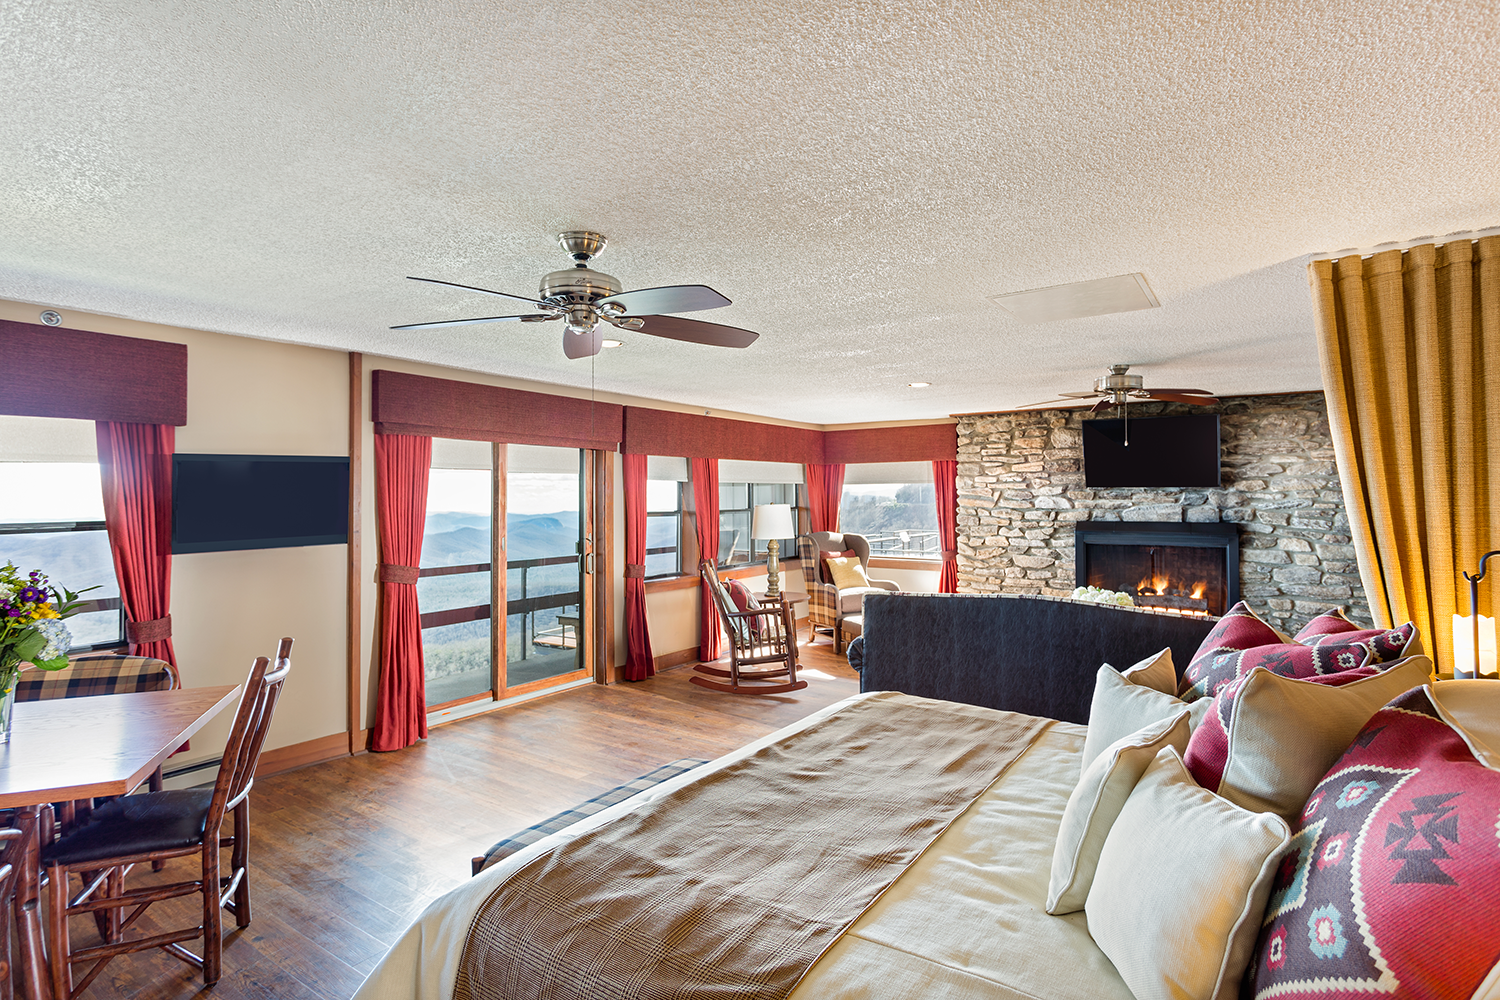 Havertys Bedrooms Complimentary Breakfast Included Picture Of 28 Images